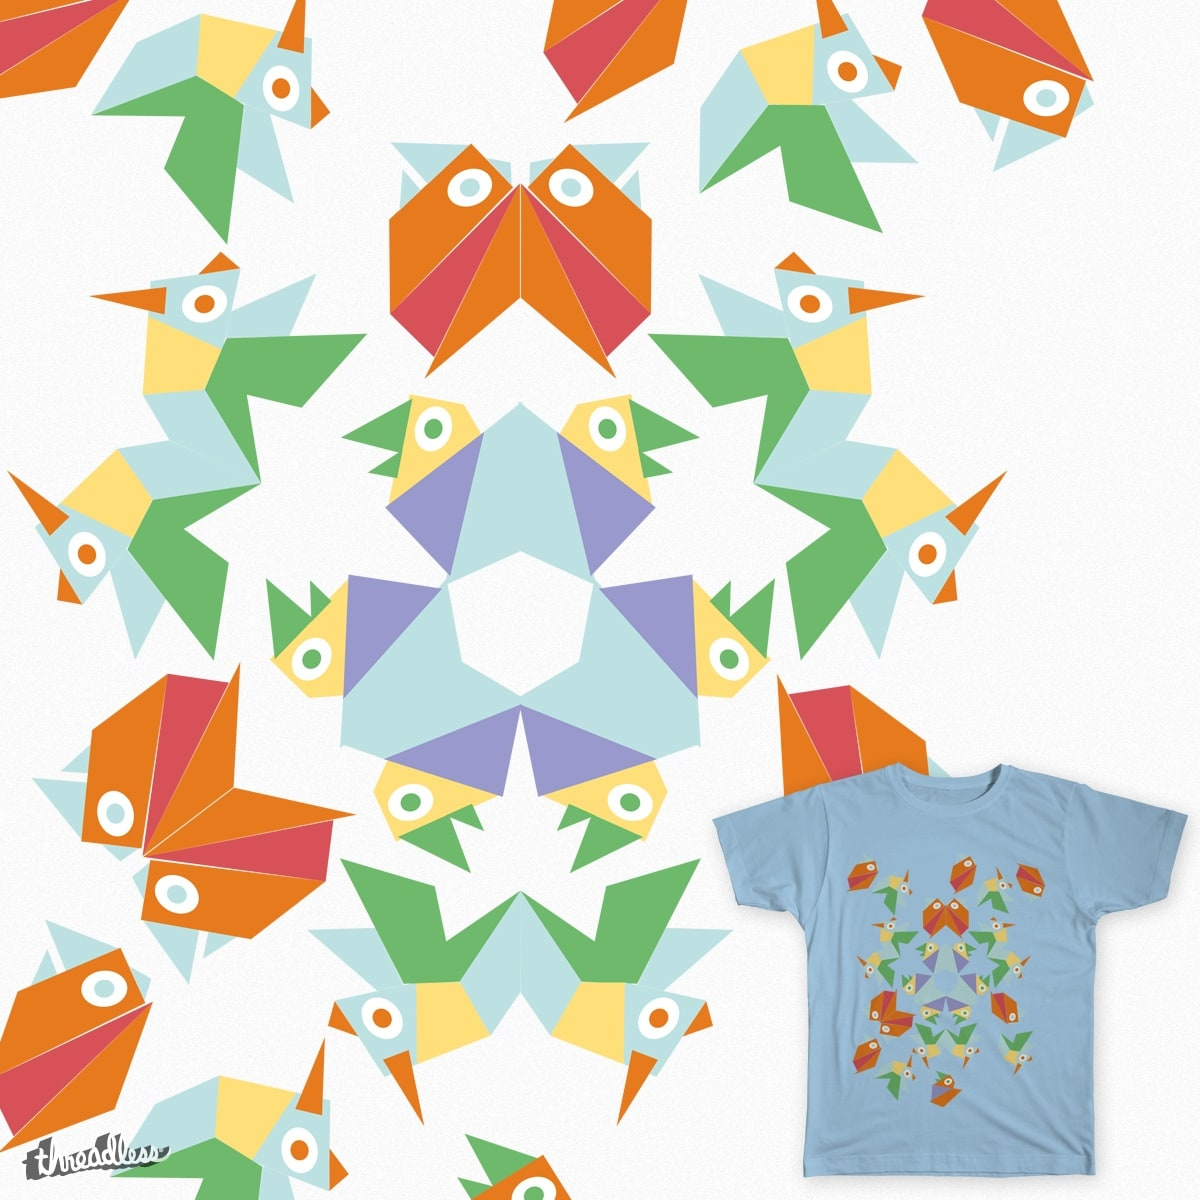 Ready to fly. by JimenaSalas on Threadless